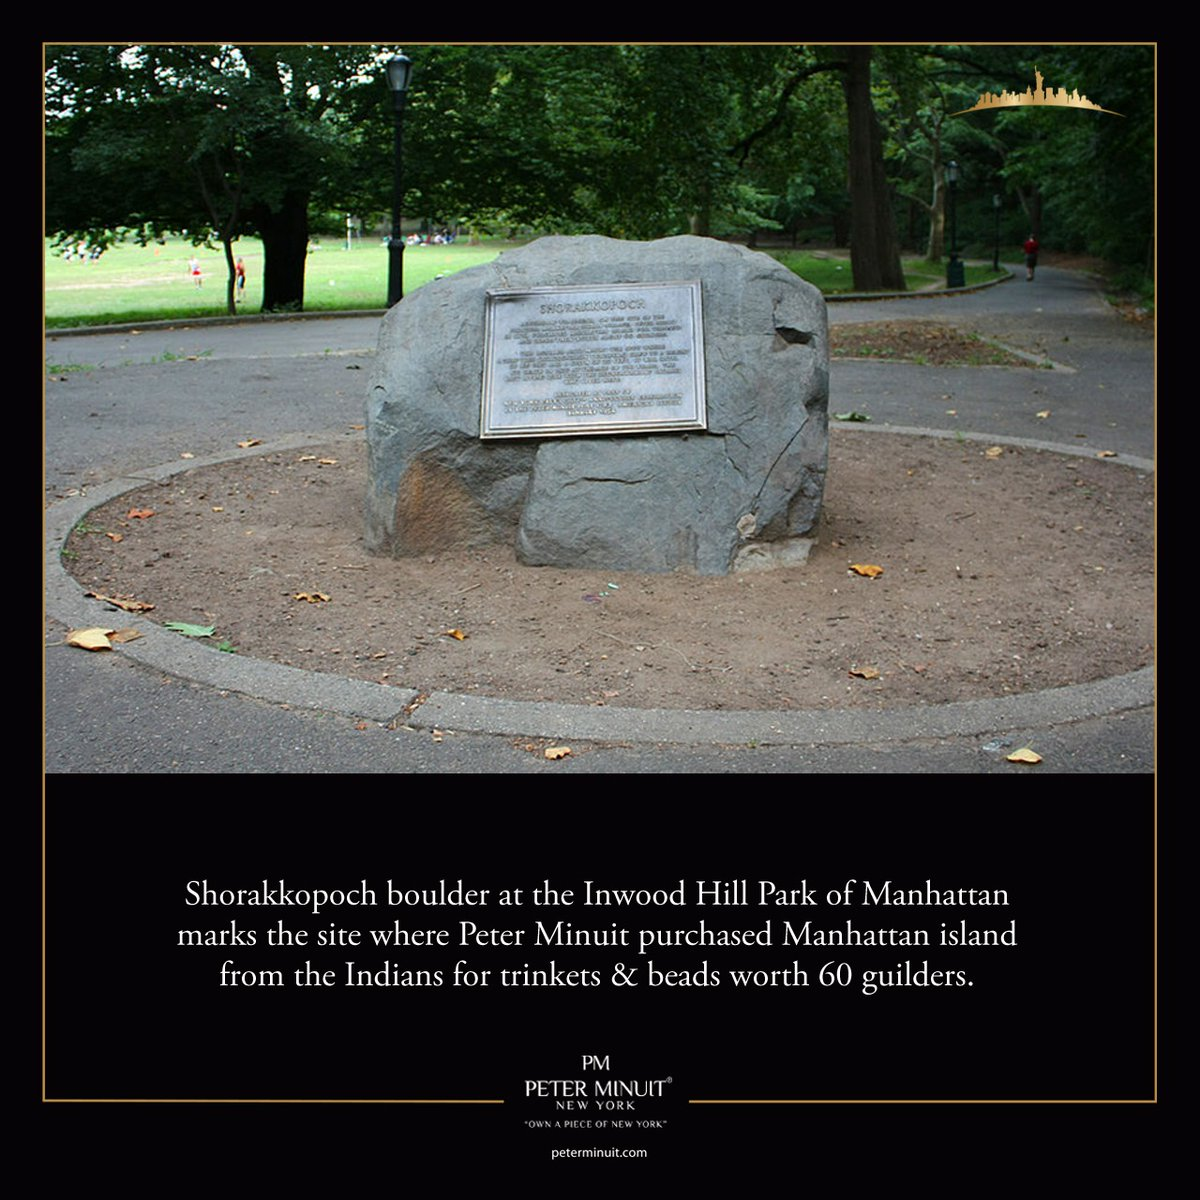 Shorakkopoch boulder at the Inwood Hill Park of Manhattan marks the site where Peter Minuit purchased Manhattan island from the Indians for trinkets & beads worth 60 guilders.  #PeterMinuit  #watches #soho #broadway #wallstreet #timessquare  #newyorkcity https://t.co/mV4DXJuXXx